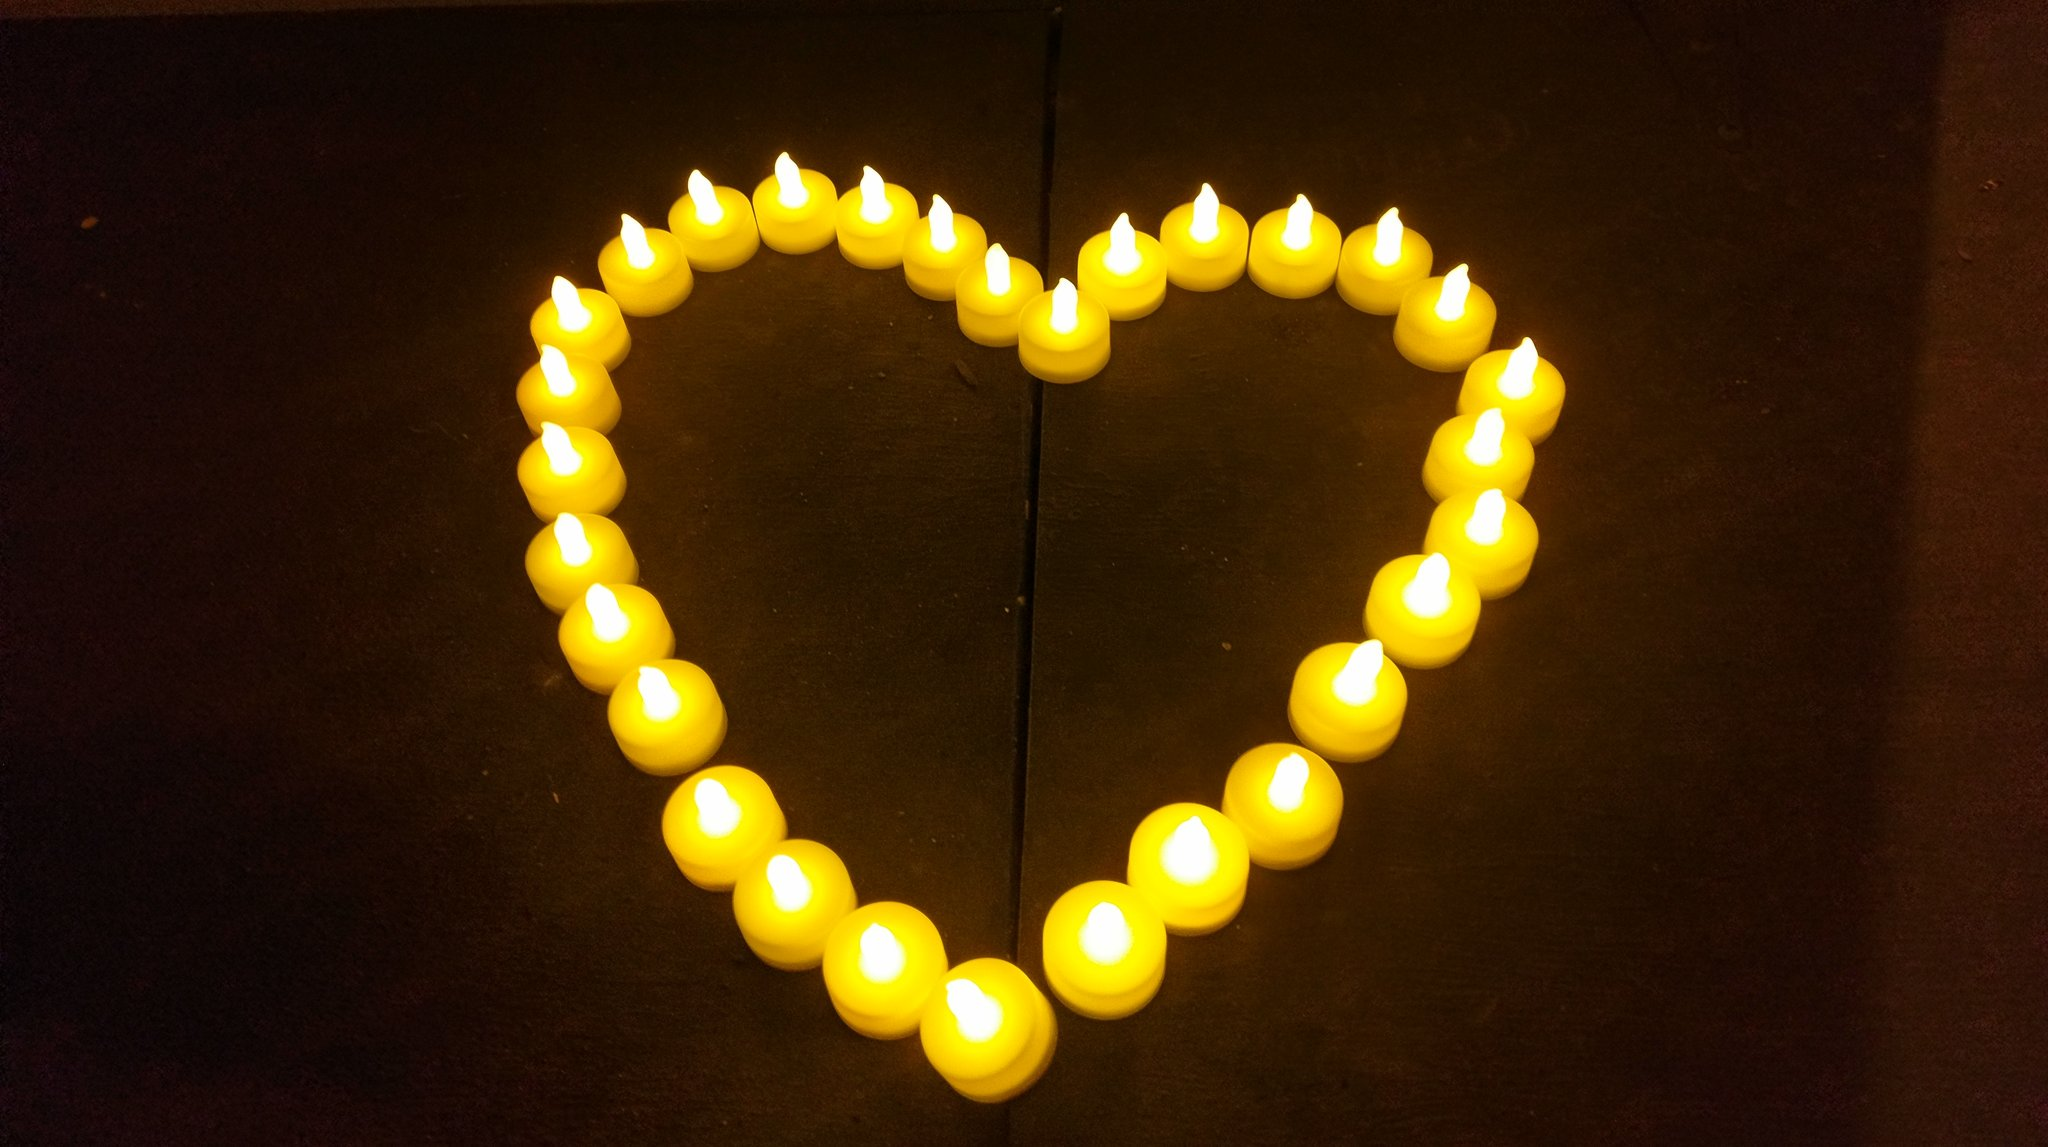 "<div class=""meta image-caption""><div class=""origin-logo origin-image none""><span>none</span></div><span class=""caption-text"">Candles in a heart shape appear at a vigil held for the victims of the Ghost Ship Fire at Lake Merritt in Oakland on Dec. 5, 2016. (Kate Eby)</span></div>"